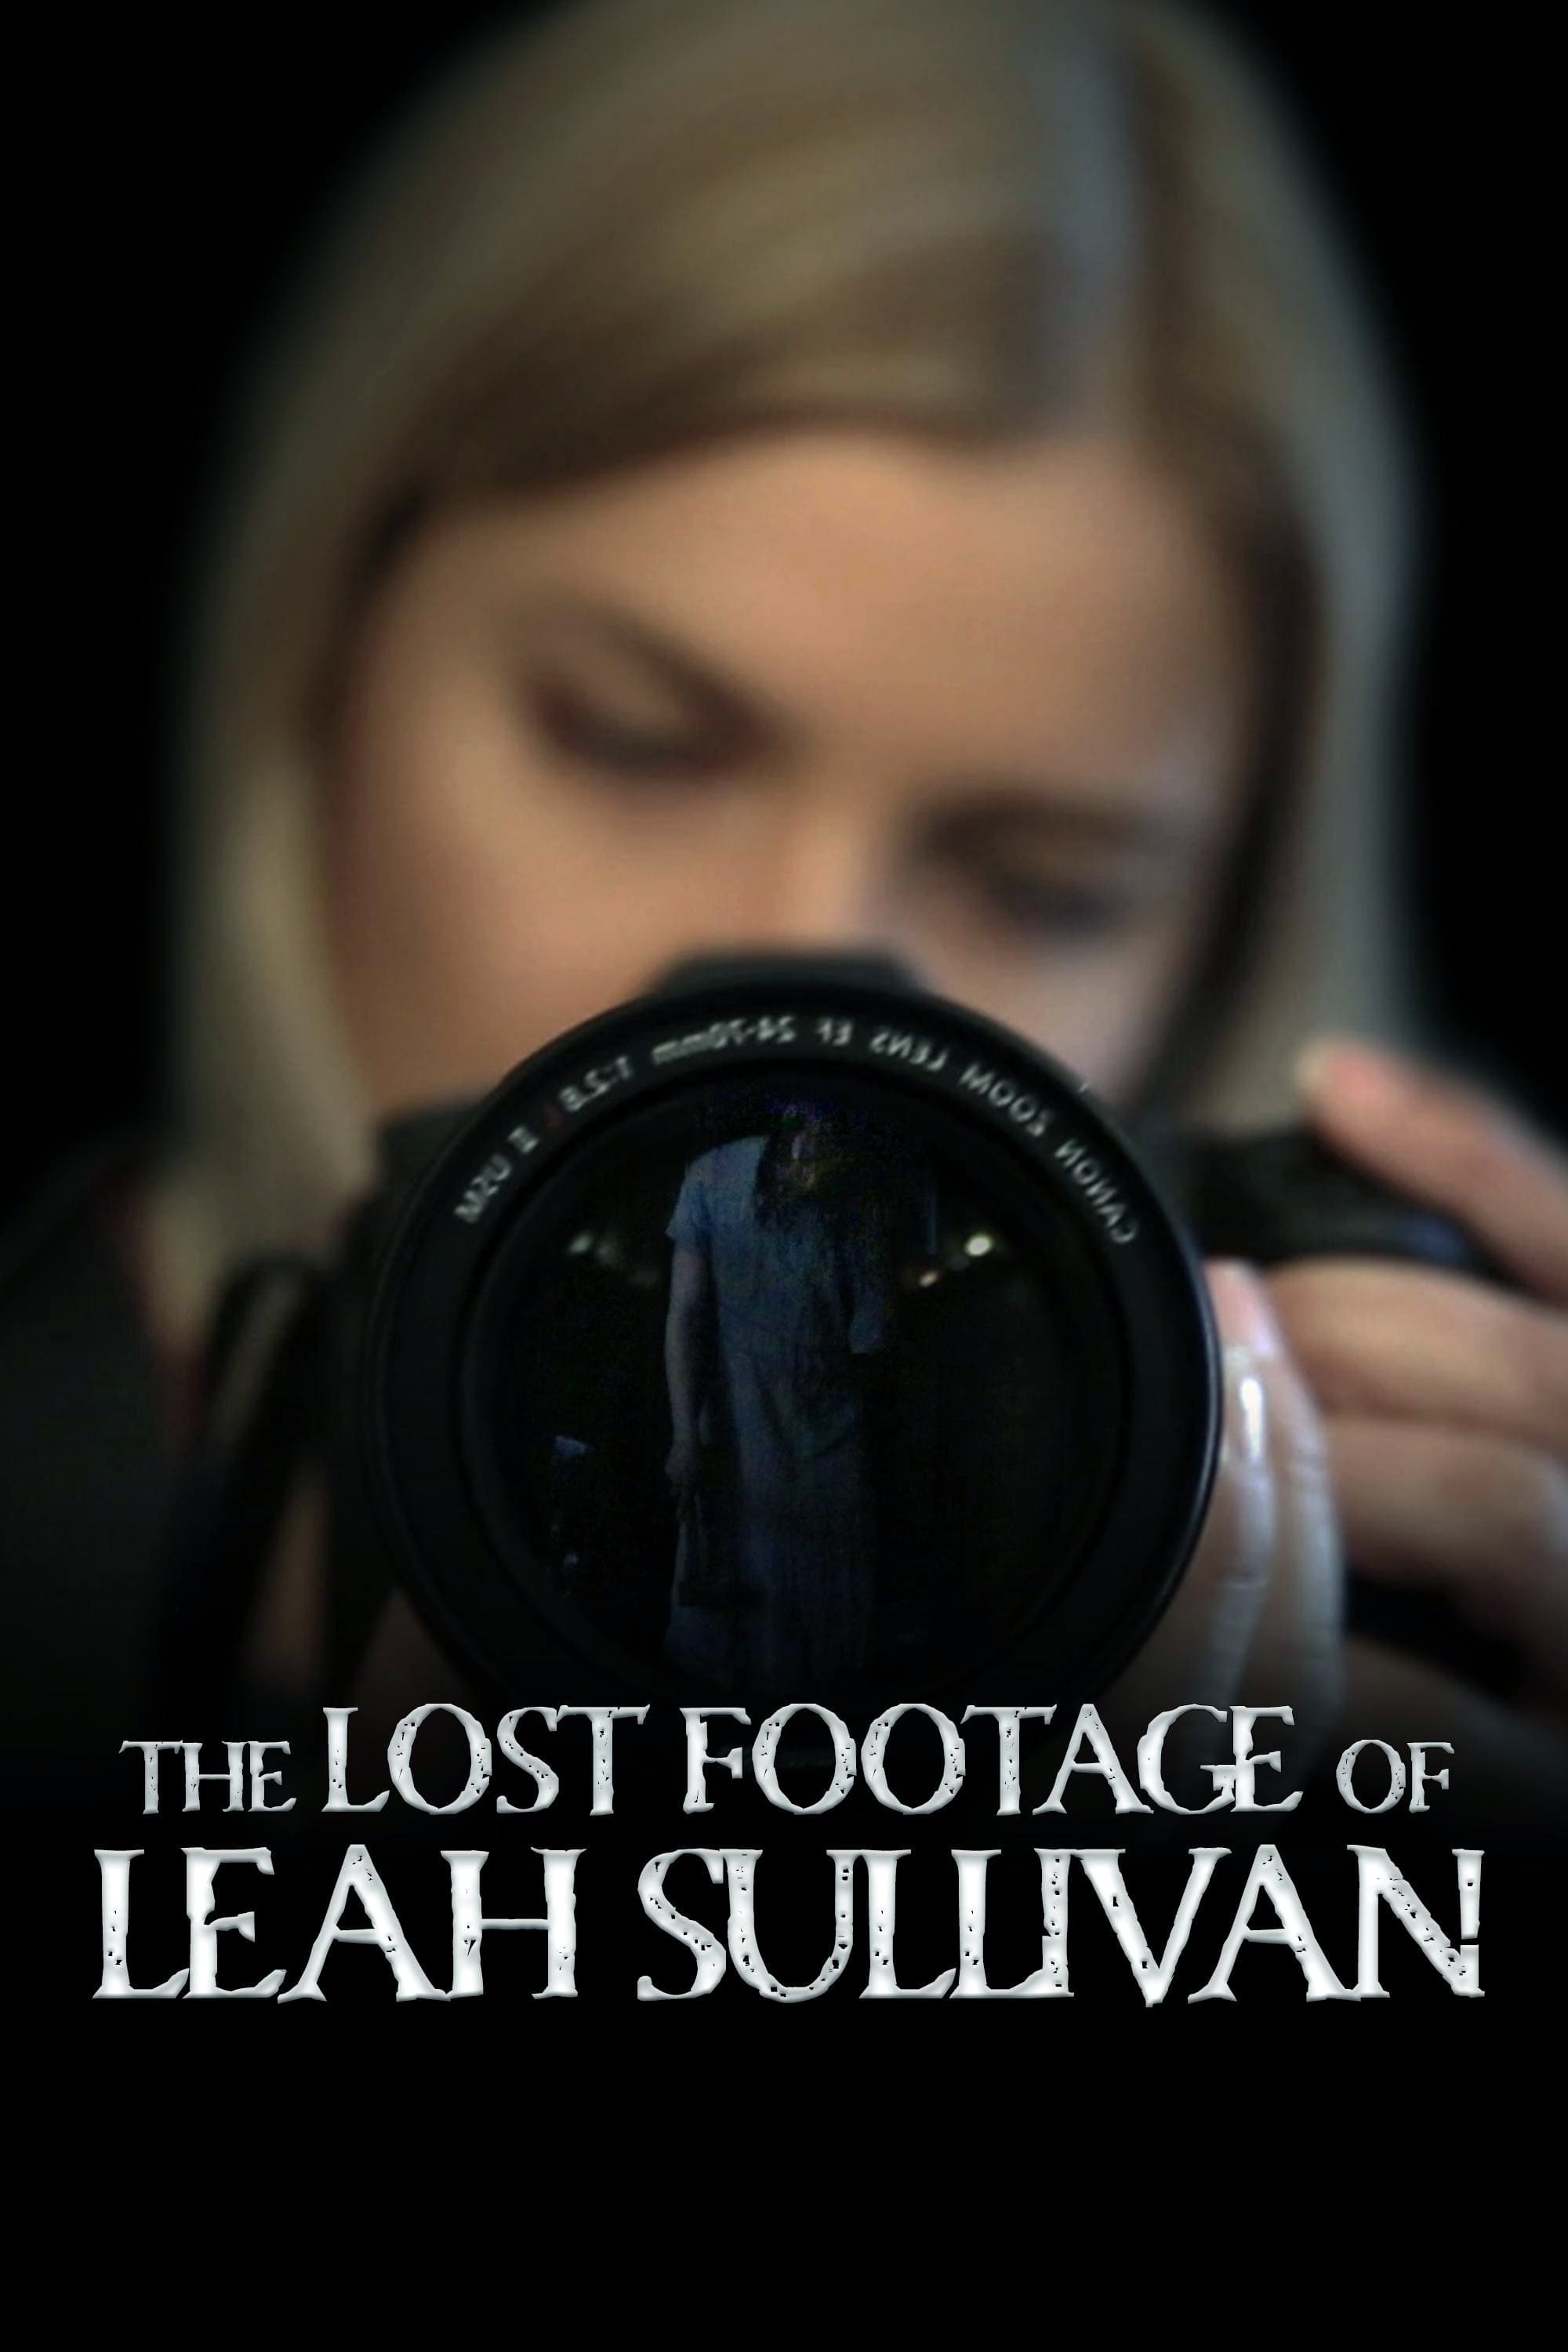 The Lost Footage of Leah Sullivan on FREECABLE TV